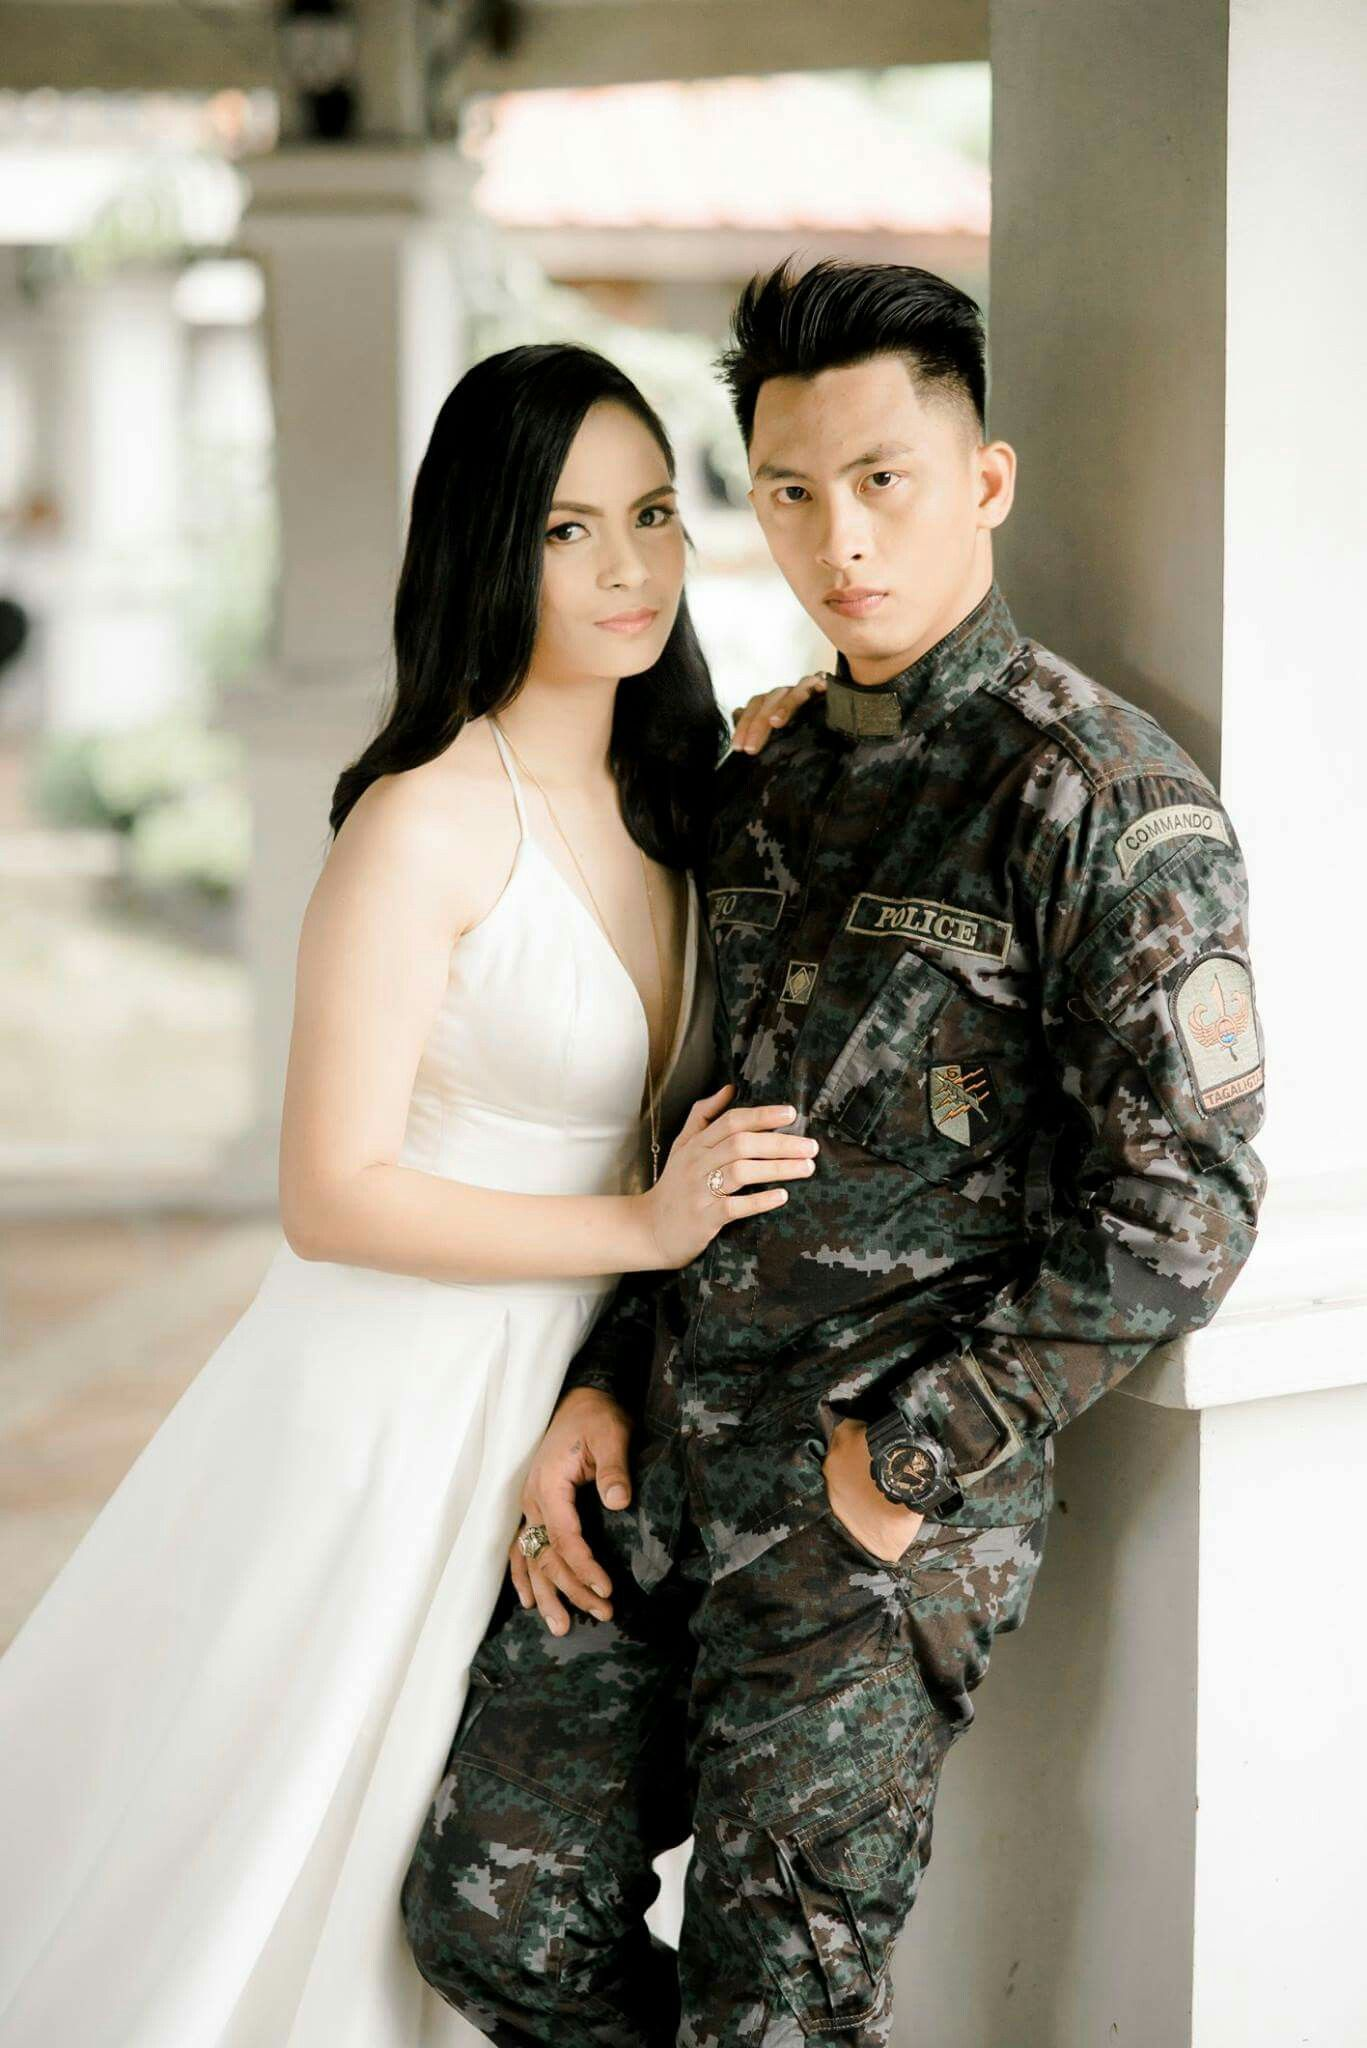 Military Themed Engagement Shoot Prenup Engagementshoot